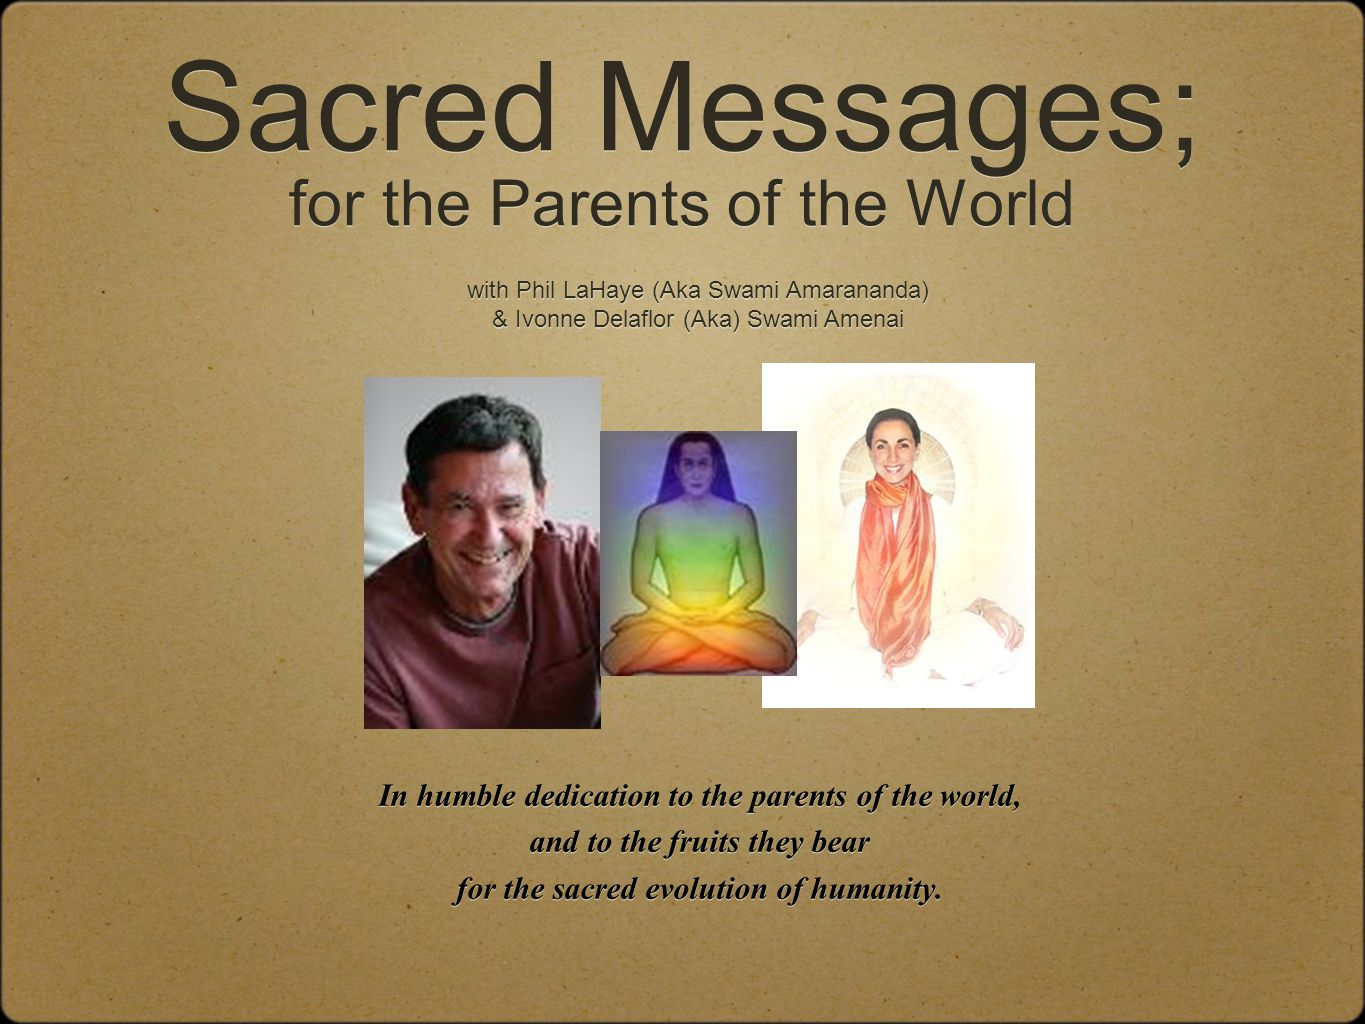 Sacred Messages; for the Parents of the World In humble dedication to the parents of the world, and to the fruits they bear for the sacred evolution of humanity.